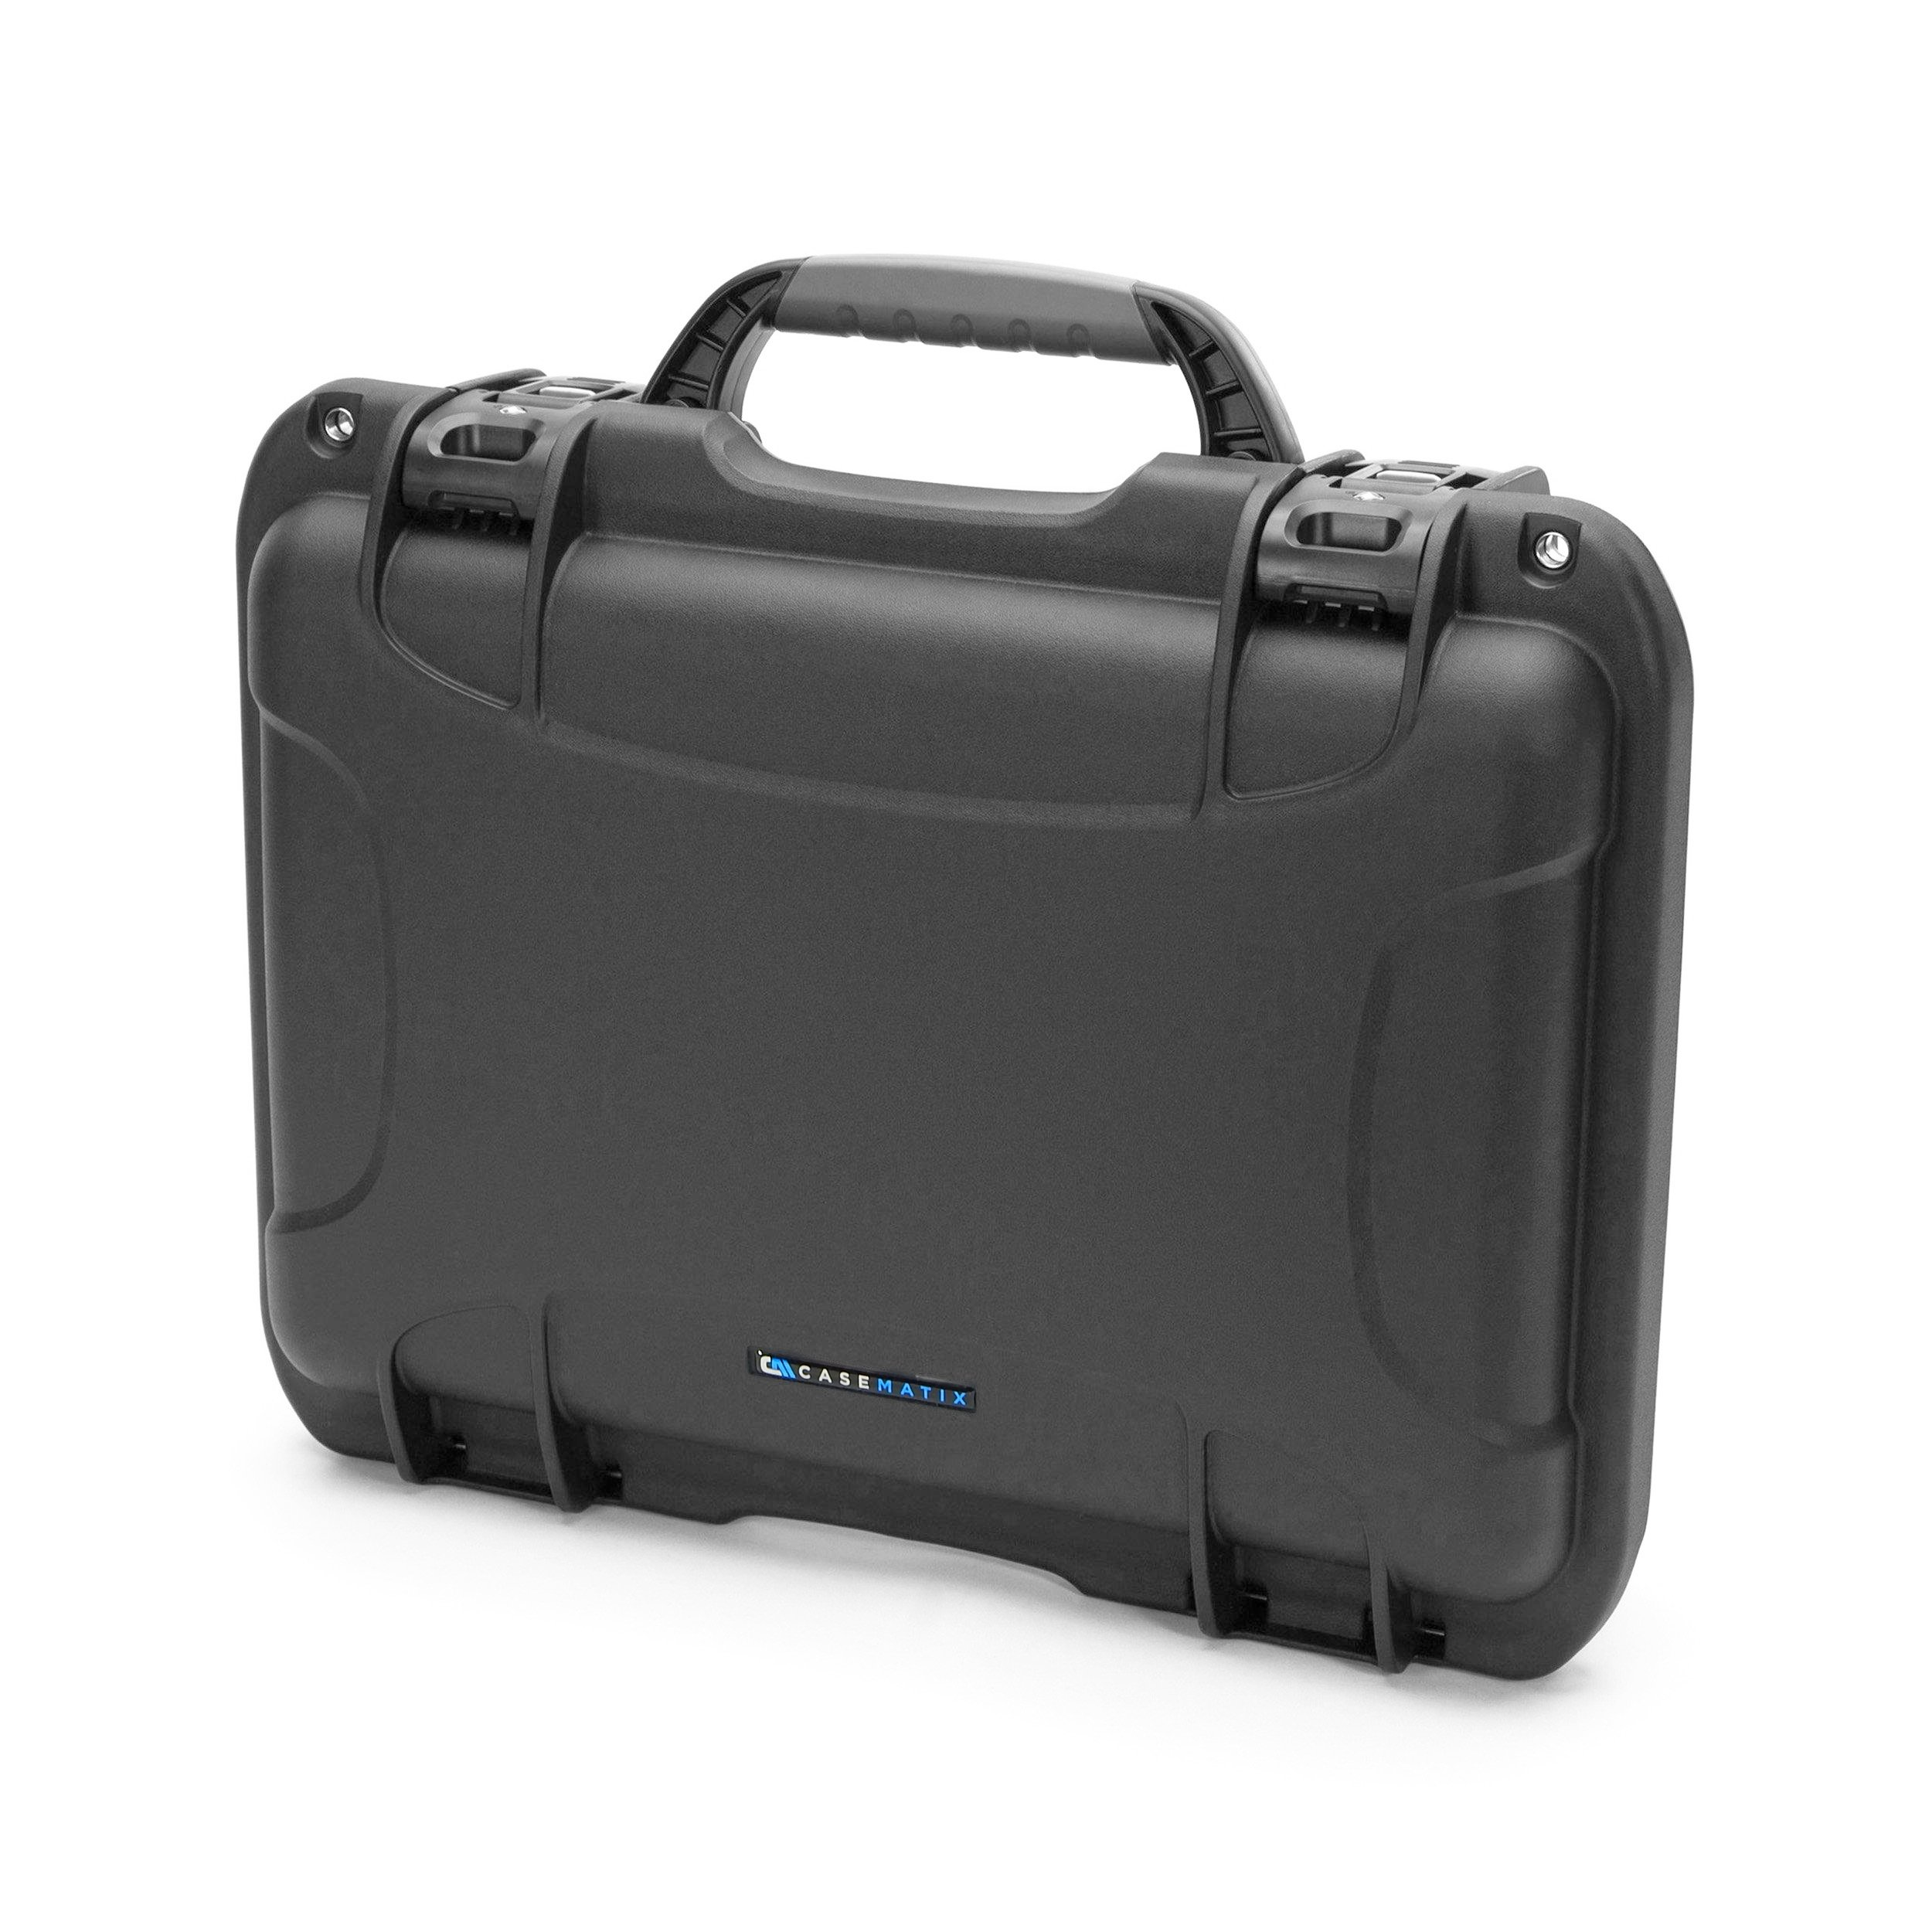 CASEMATIX ELITE Customizable Portable Printer Carry Case Fits Pixma iP110 and Workforce WF-100 – IP6x Waterproof Crushproof Travel Case for Wireless Mobile Printer , Ink Cartridges , Power Cables by CASEMATIX (Image #1)